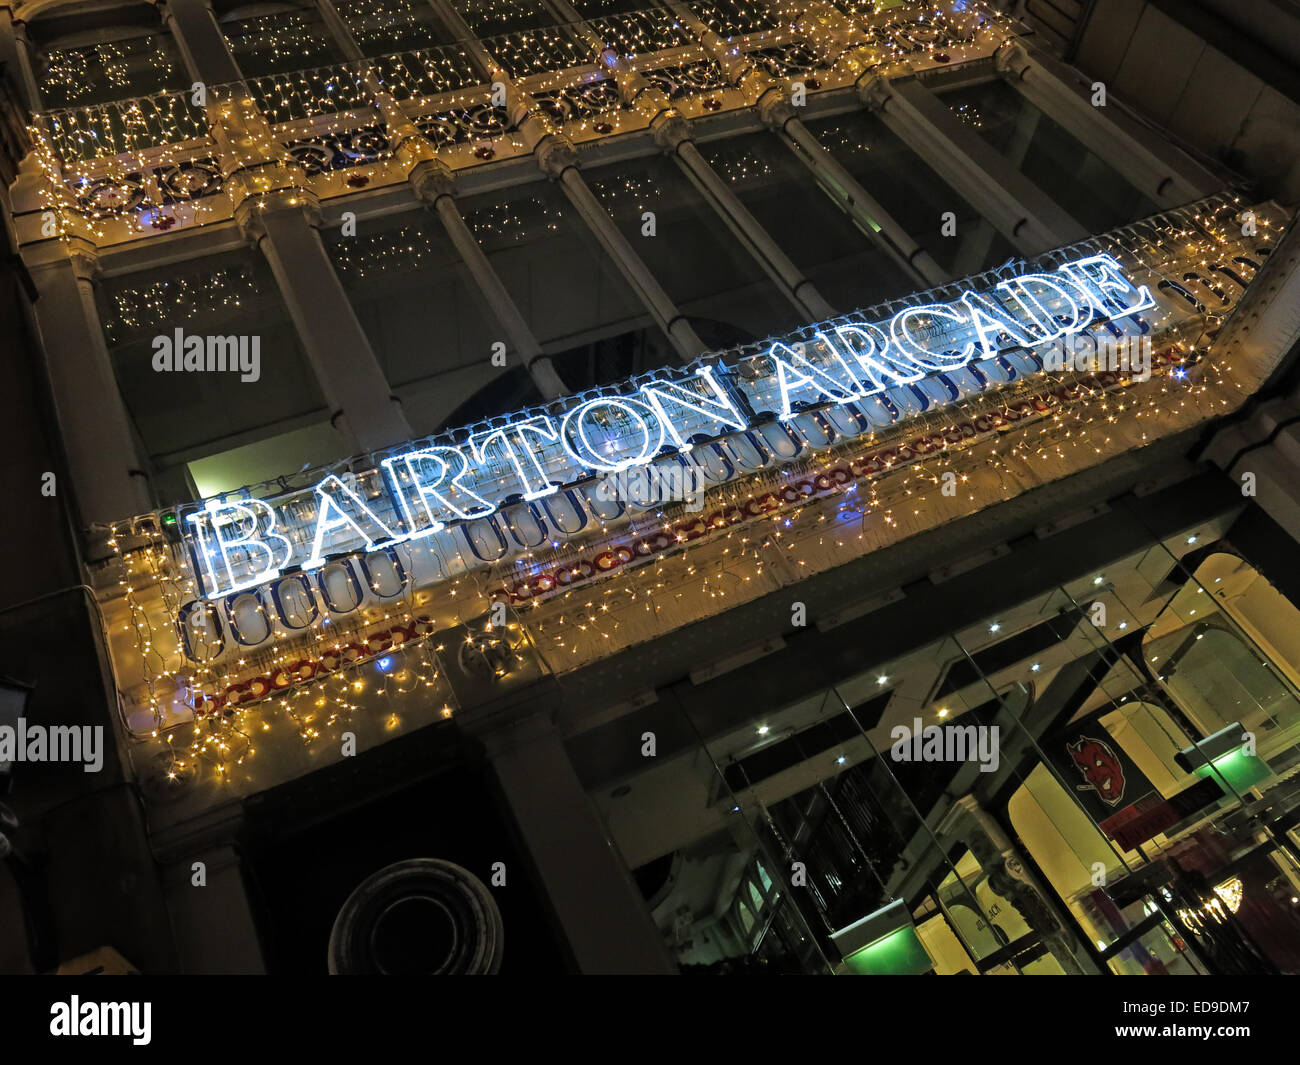 Barton Victorian Shopping Arcade, Manchester at Xmas at night, with lights, England, UK - Stock Image